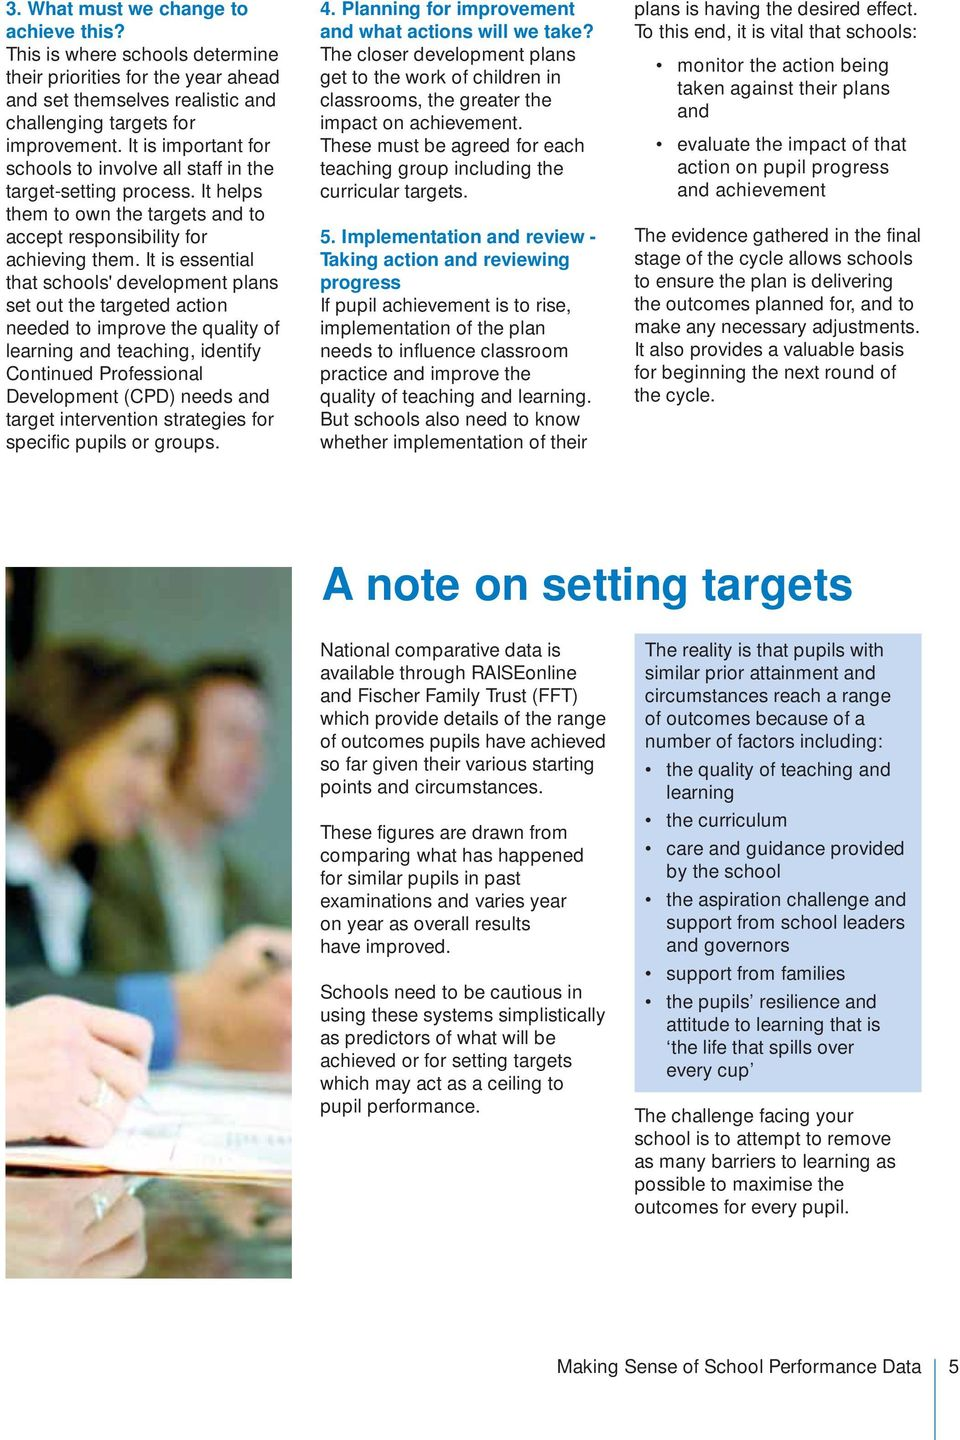 It is essential that schools' development plans set out the targeted action needed to improve the quality of learning and teaching, identify Continued Professional Development (CPD) needs and target